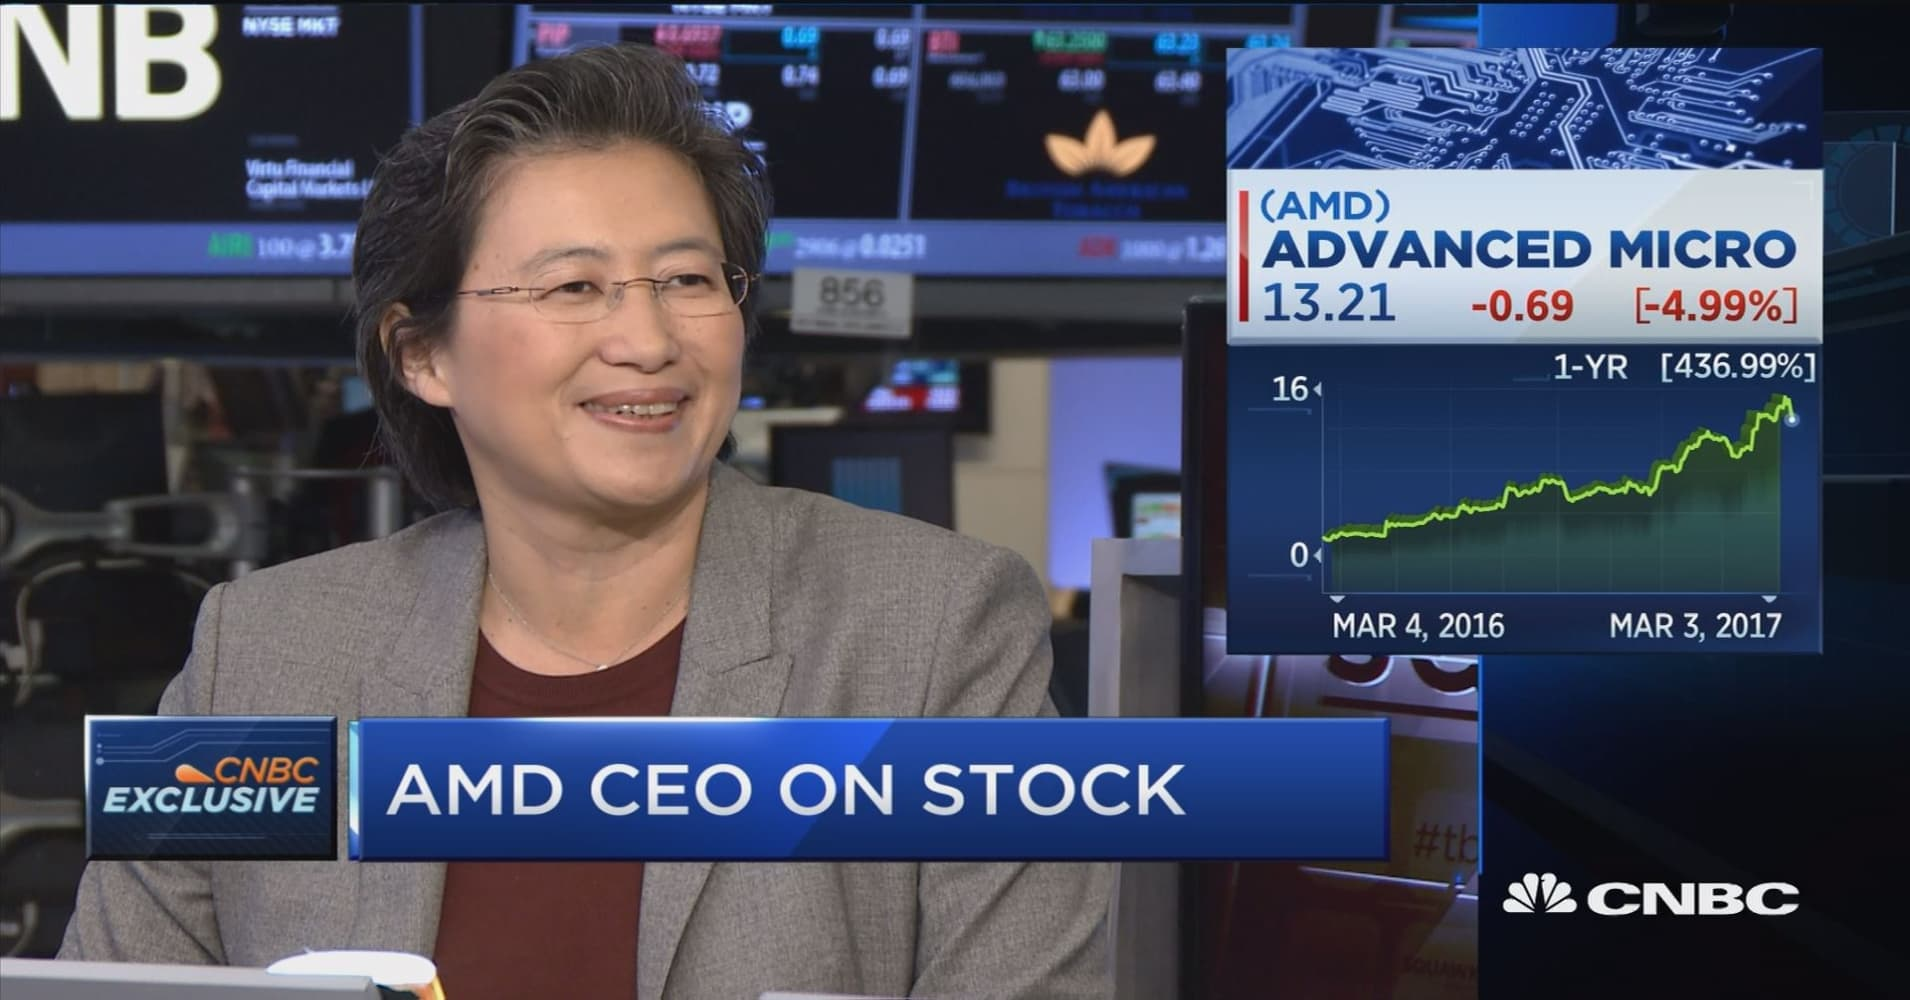 Full interview with AMD CEO on fixing gaming performance issues, stock slide